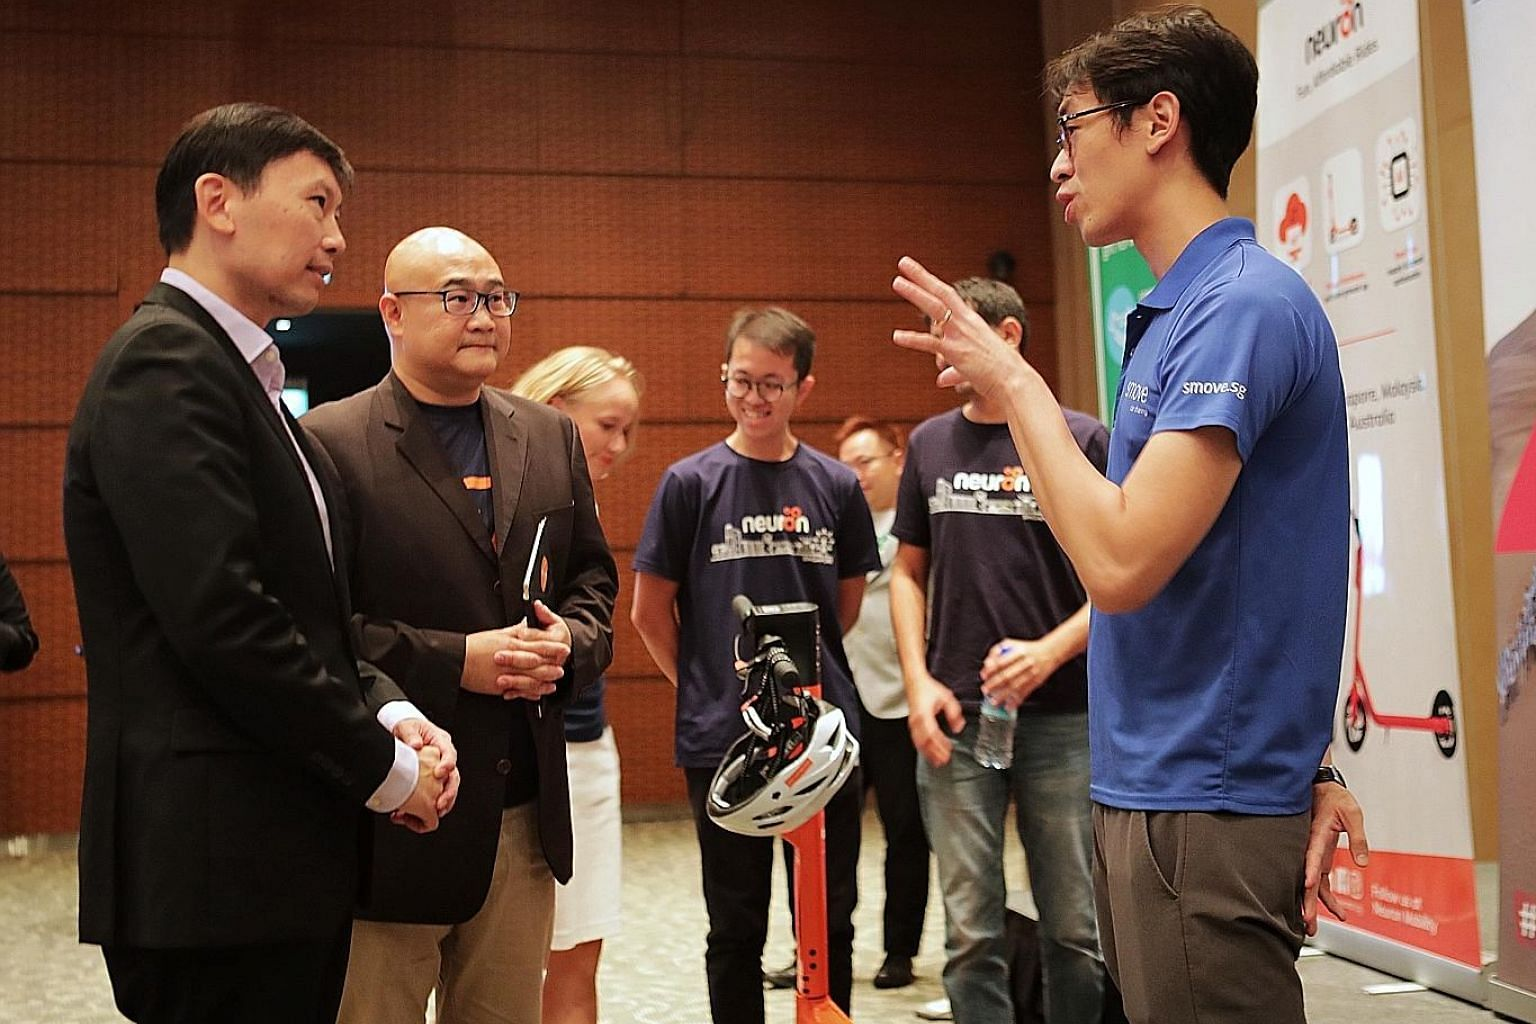 (From left) Senior Minister of State Chee Hong Tat and Mr Colin Lim, chief executive of mobilityX, speaking with Mr Joseph Ting, co-founder of car-sharing service Smove, at the official launch of Zipster at The Star Performing Arts Centre yesterday.